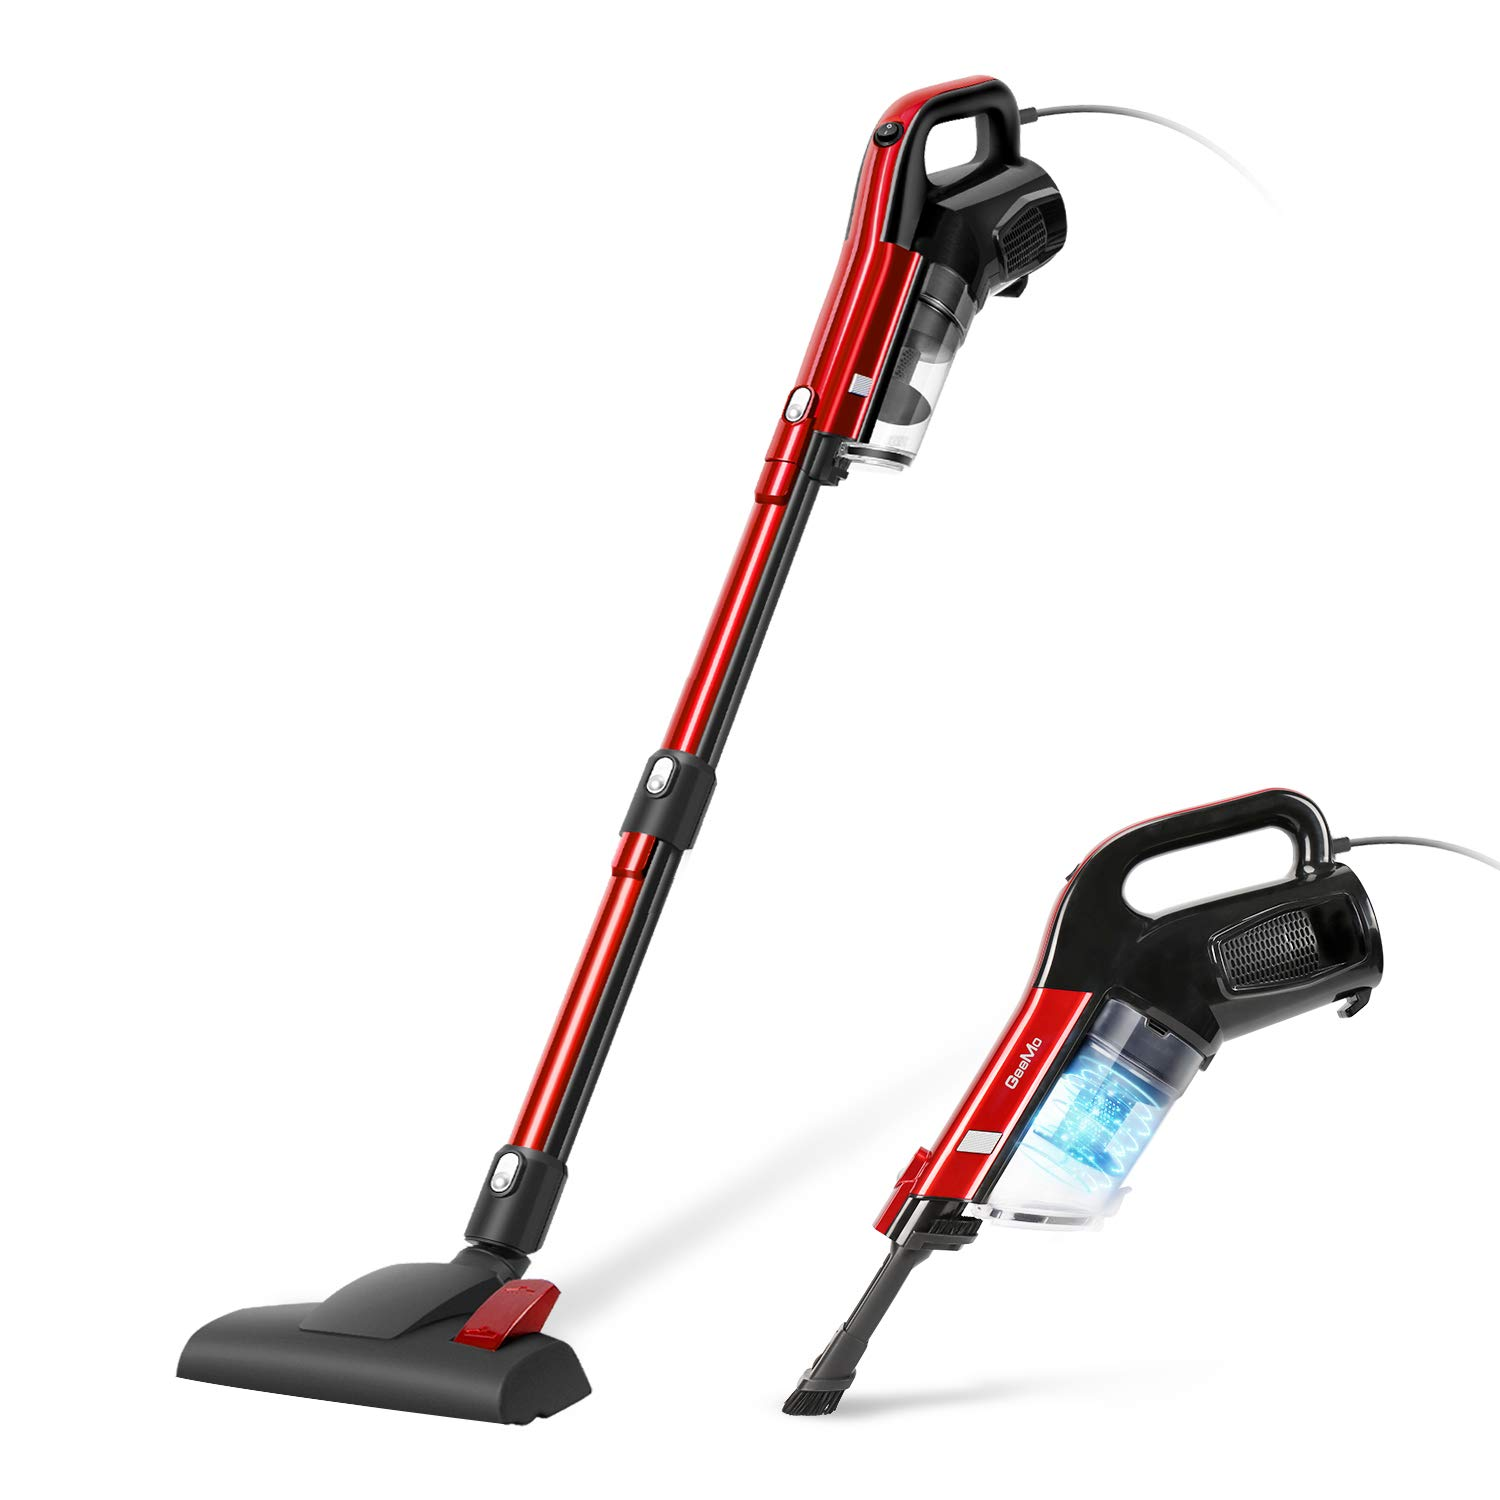 GeeMo Vacuum Cleaner 17Kpa 2 in 1 Handheld Corded Powerful Cleaning Lightweight True HEPA for Hard Floor H594 (RED-1)